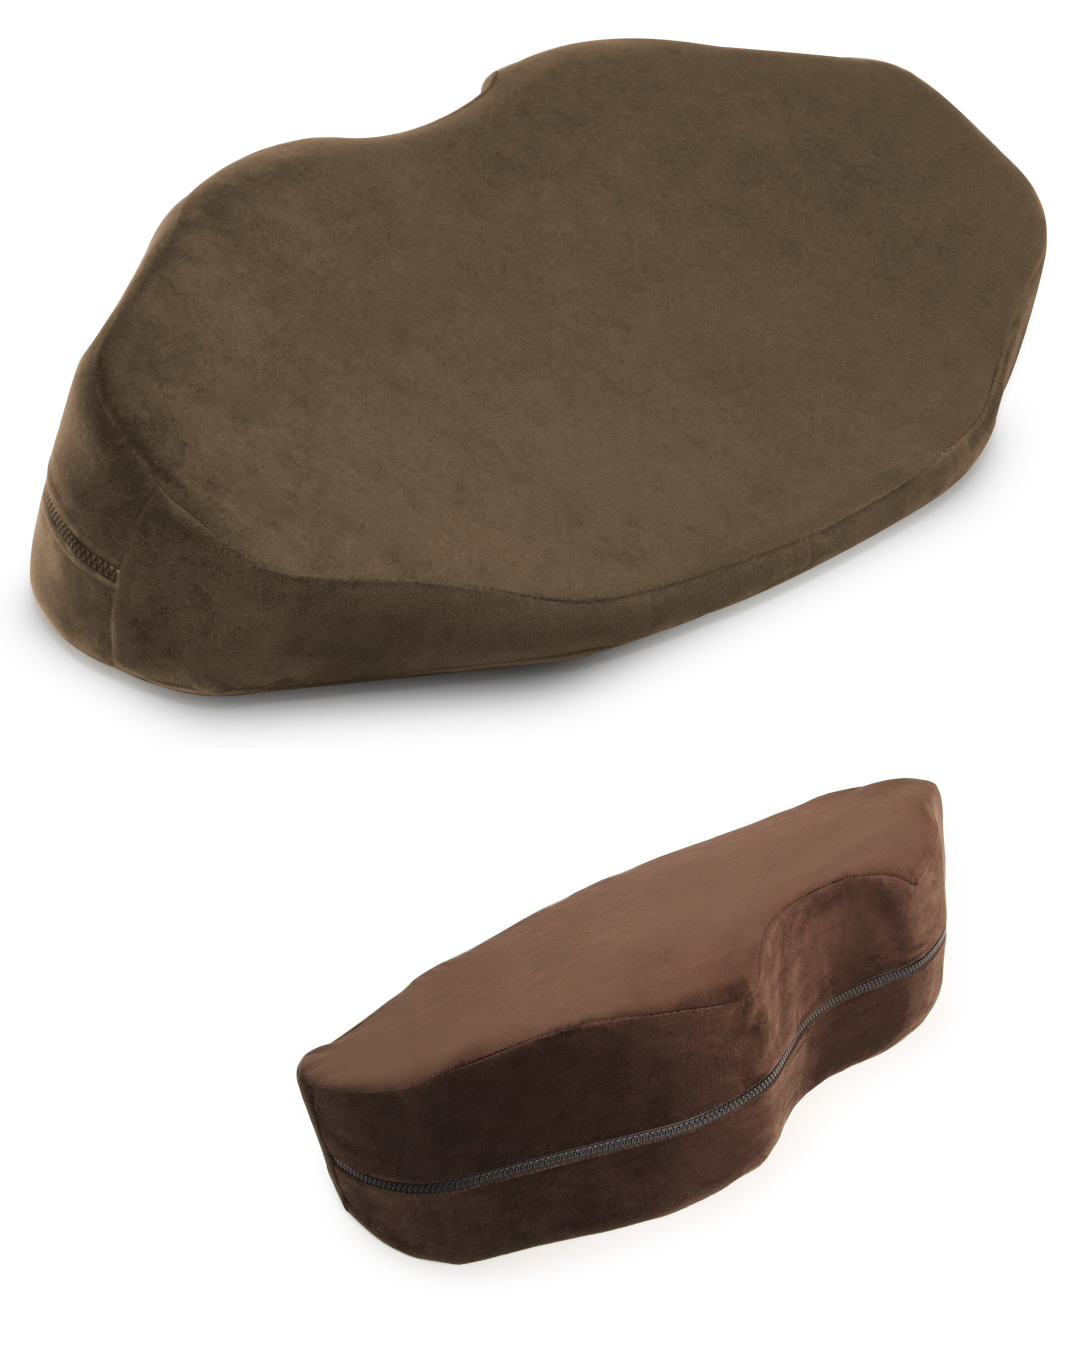 Liberator Decor Arche Wedge Sex Positioning Cushion - Assorted Colors brown